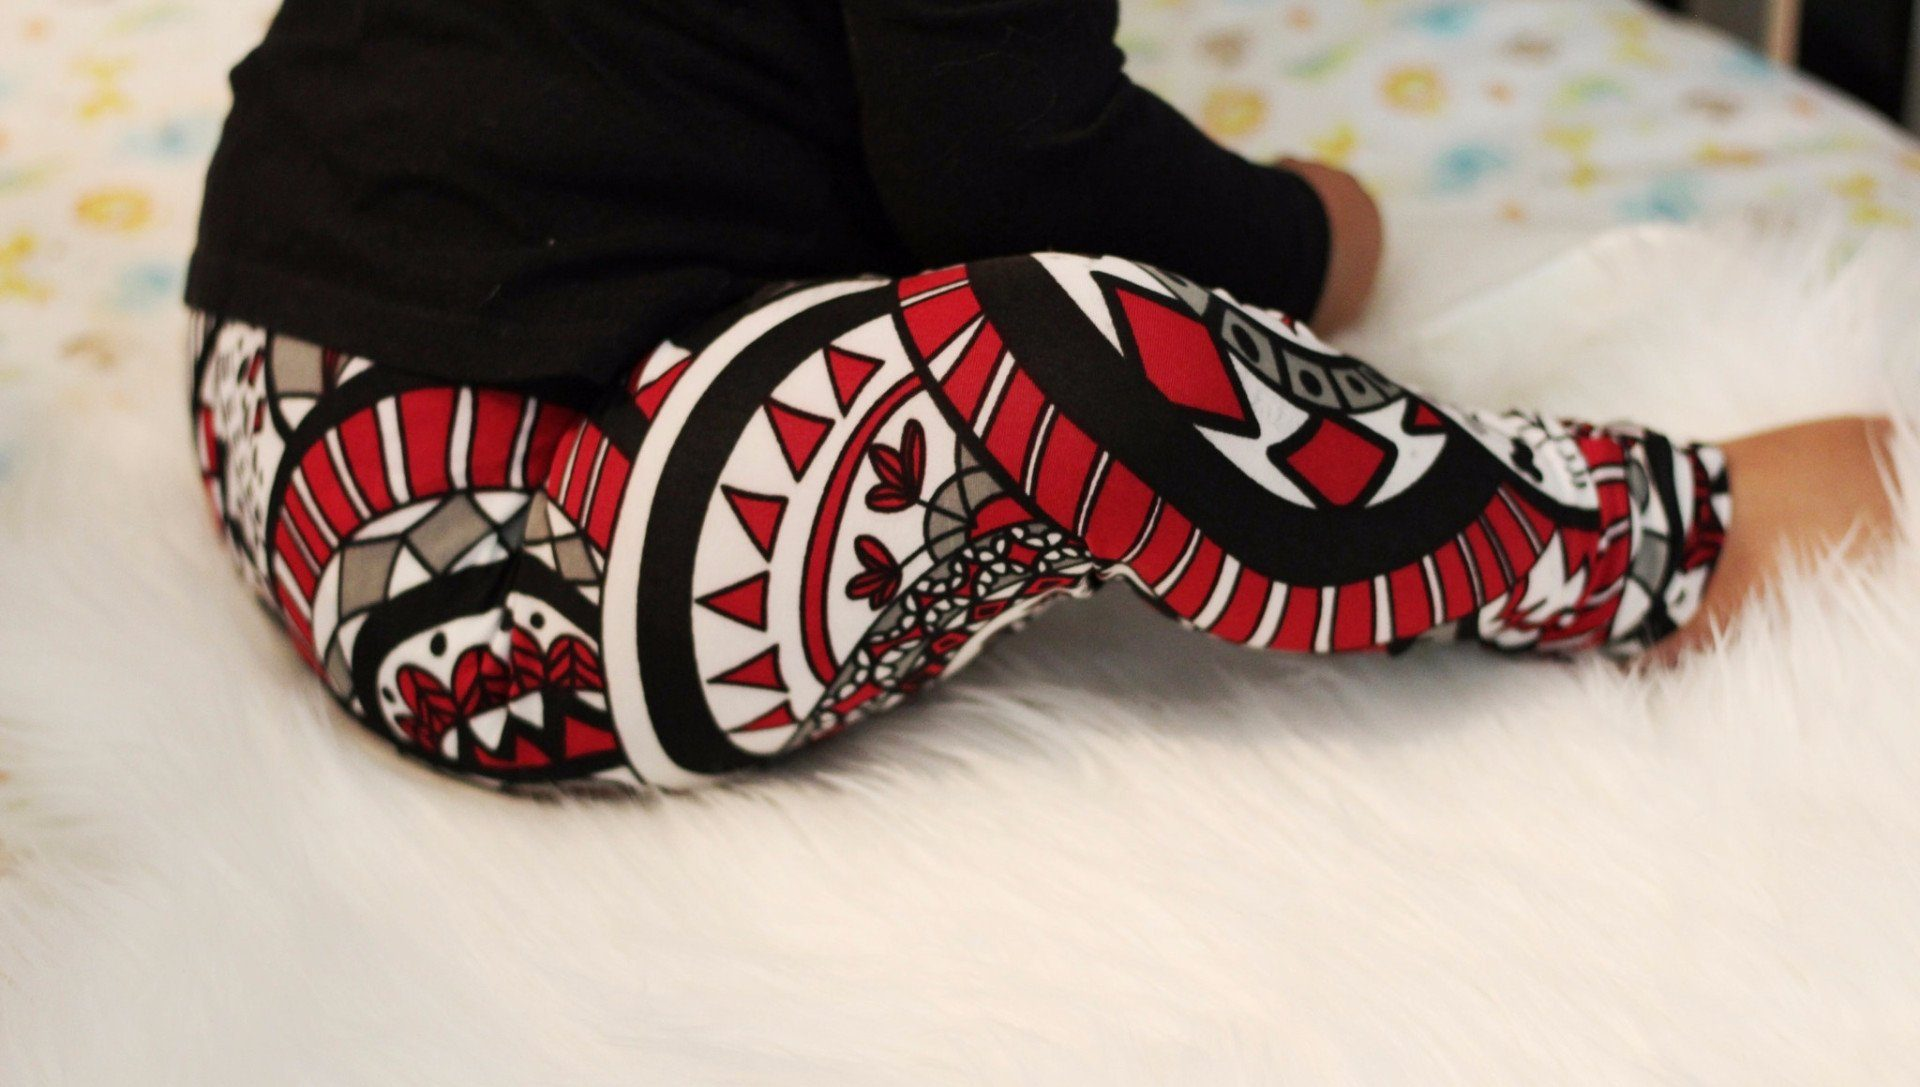 Leggings - Tribal Pants For Children's - Colorful Aztec